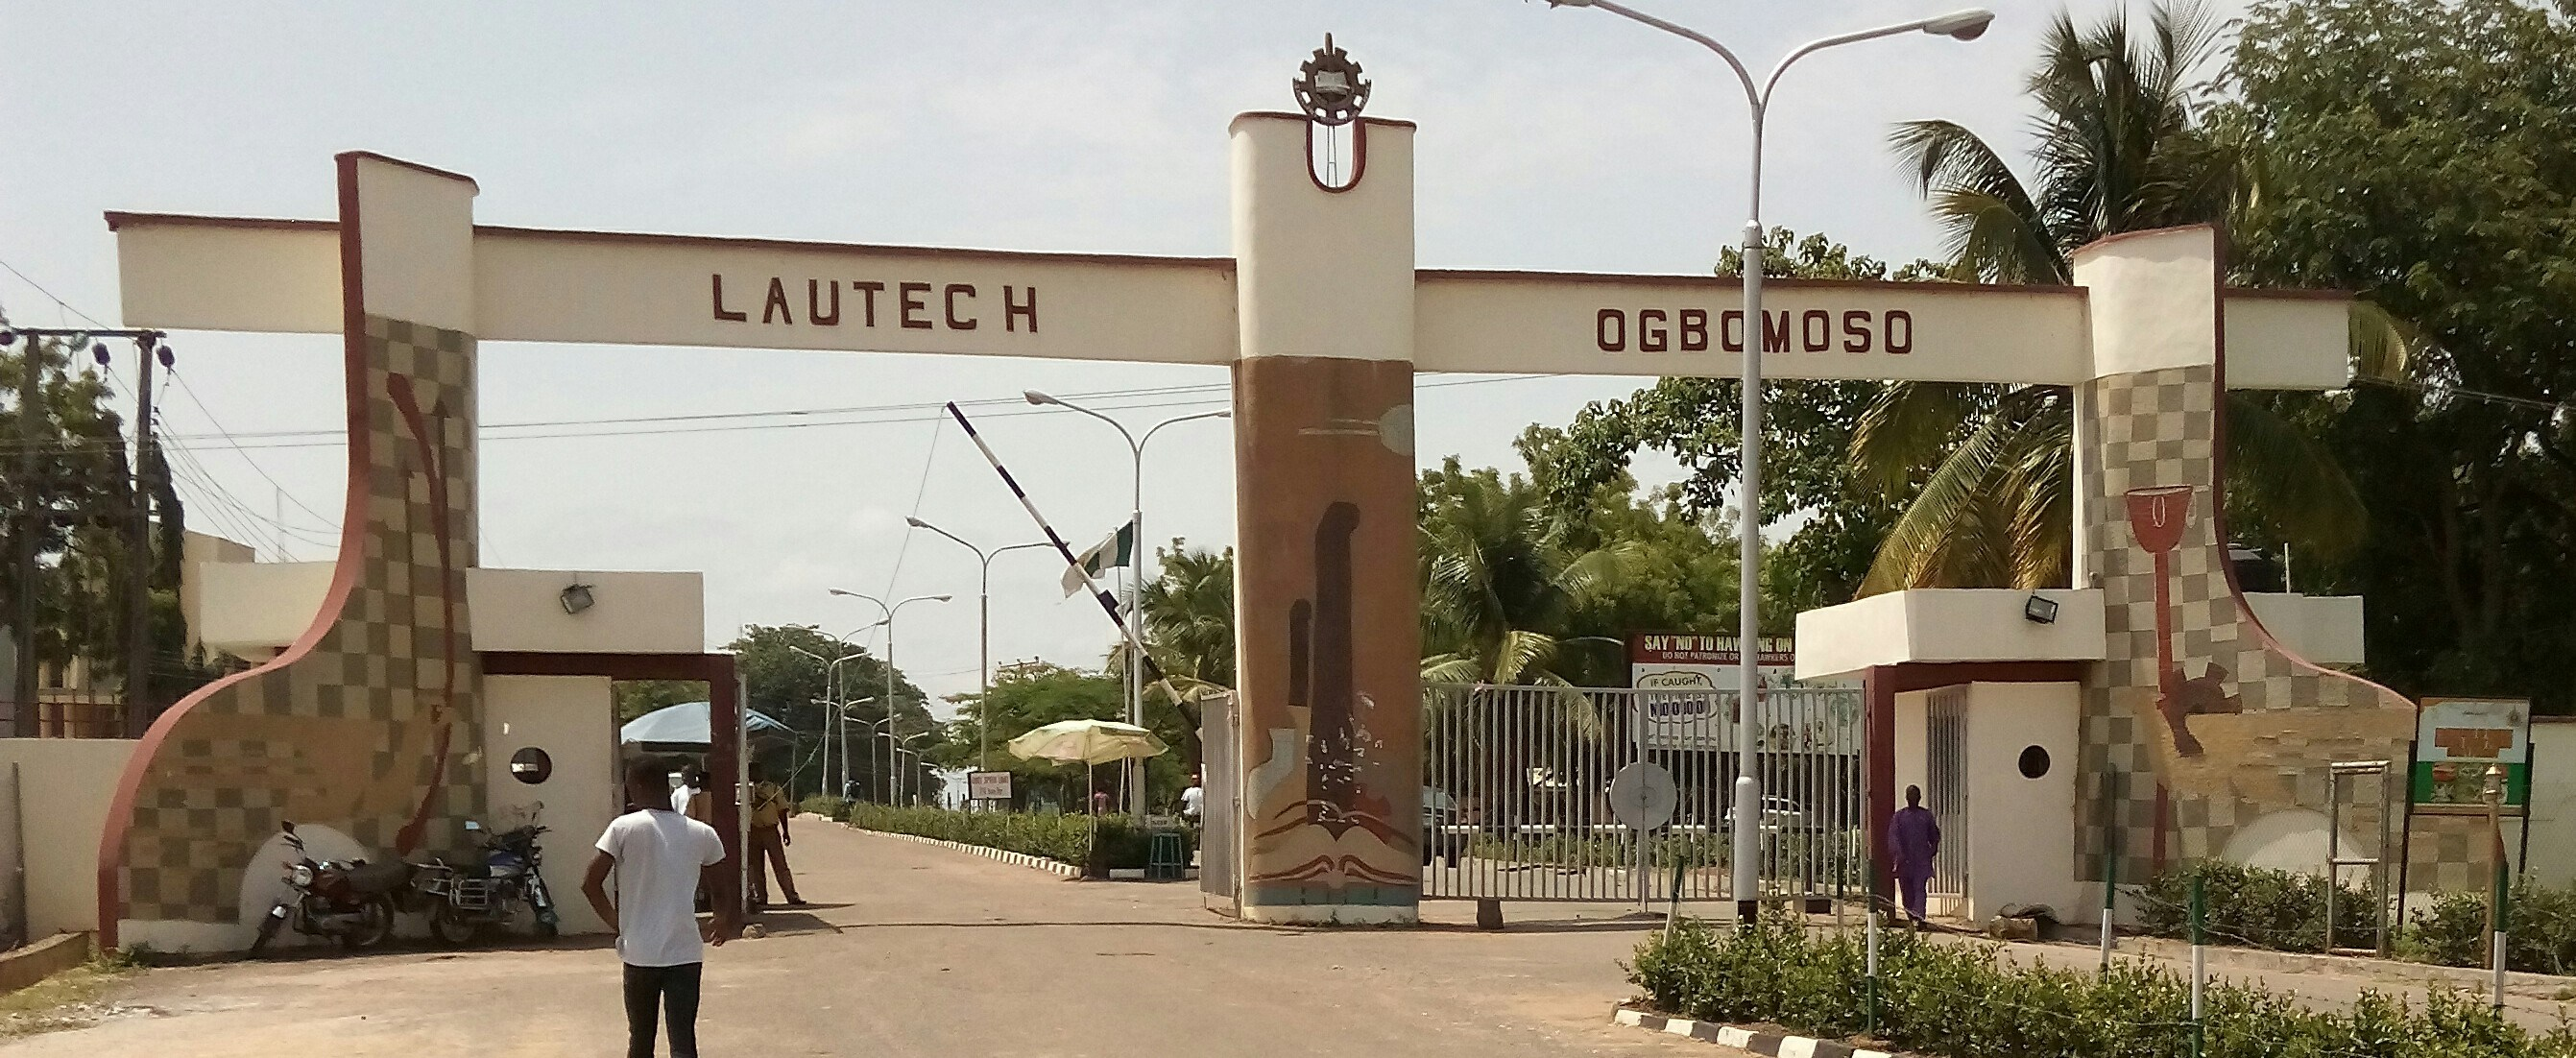 BREAKING: ASUU LAUTECH Call Off Strike, Academic Activities To Begin Monday 23rd